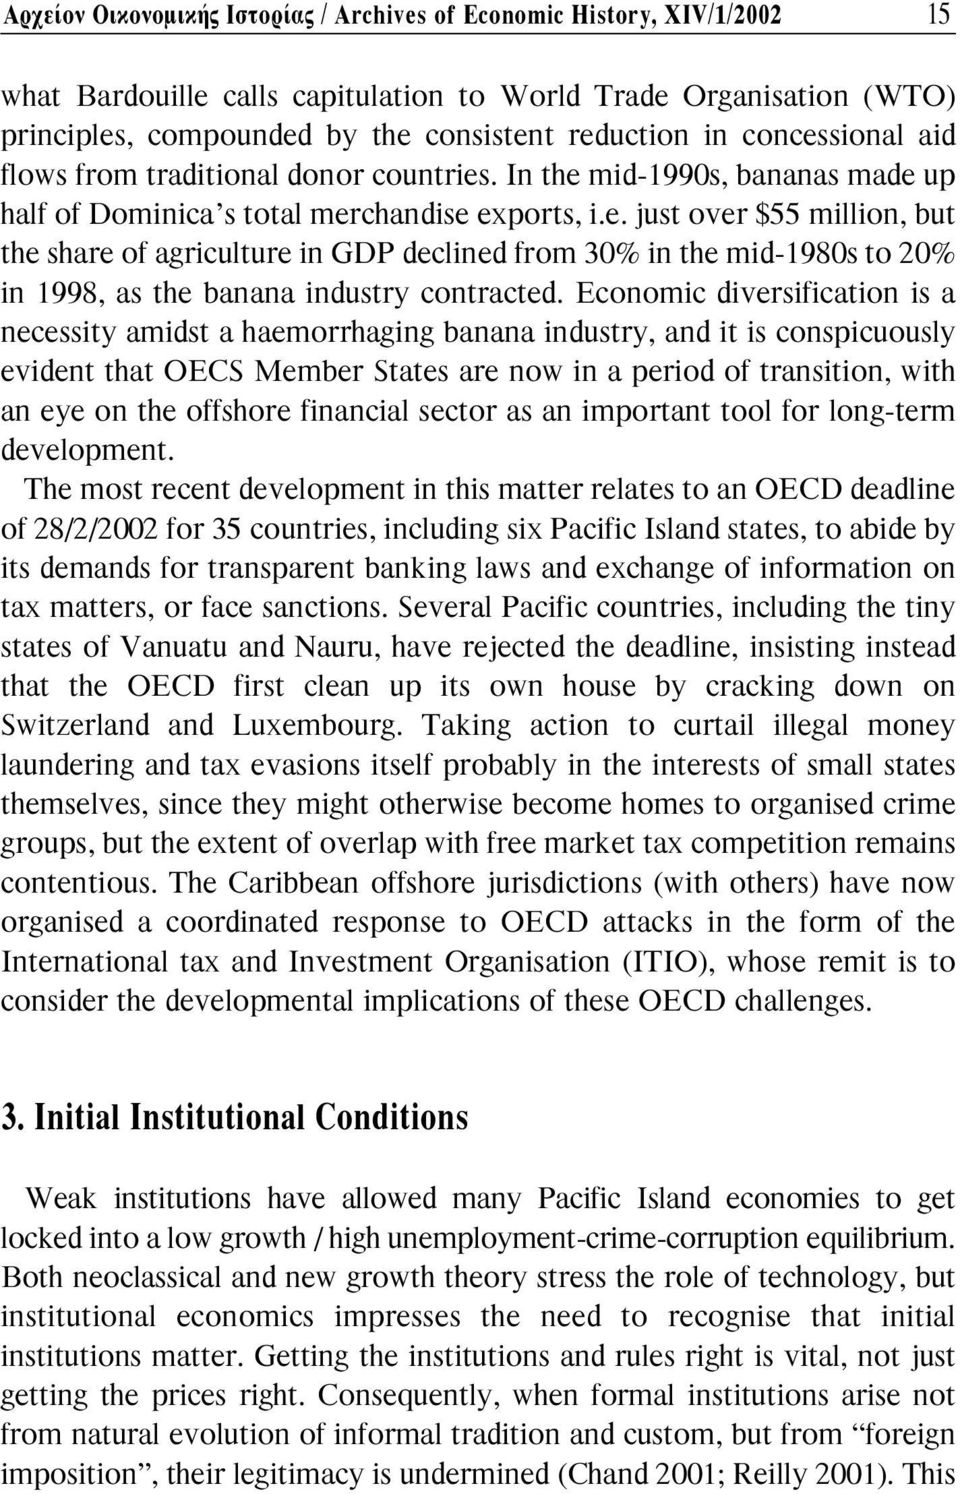 Economic diversification is a necessity amidst a haemorrhaging banana industry, and it is conspicuously evident that OECS Member States are now in a period of transition, with an eye on the offshore